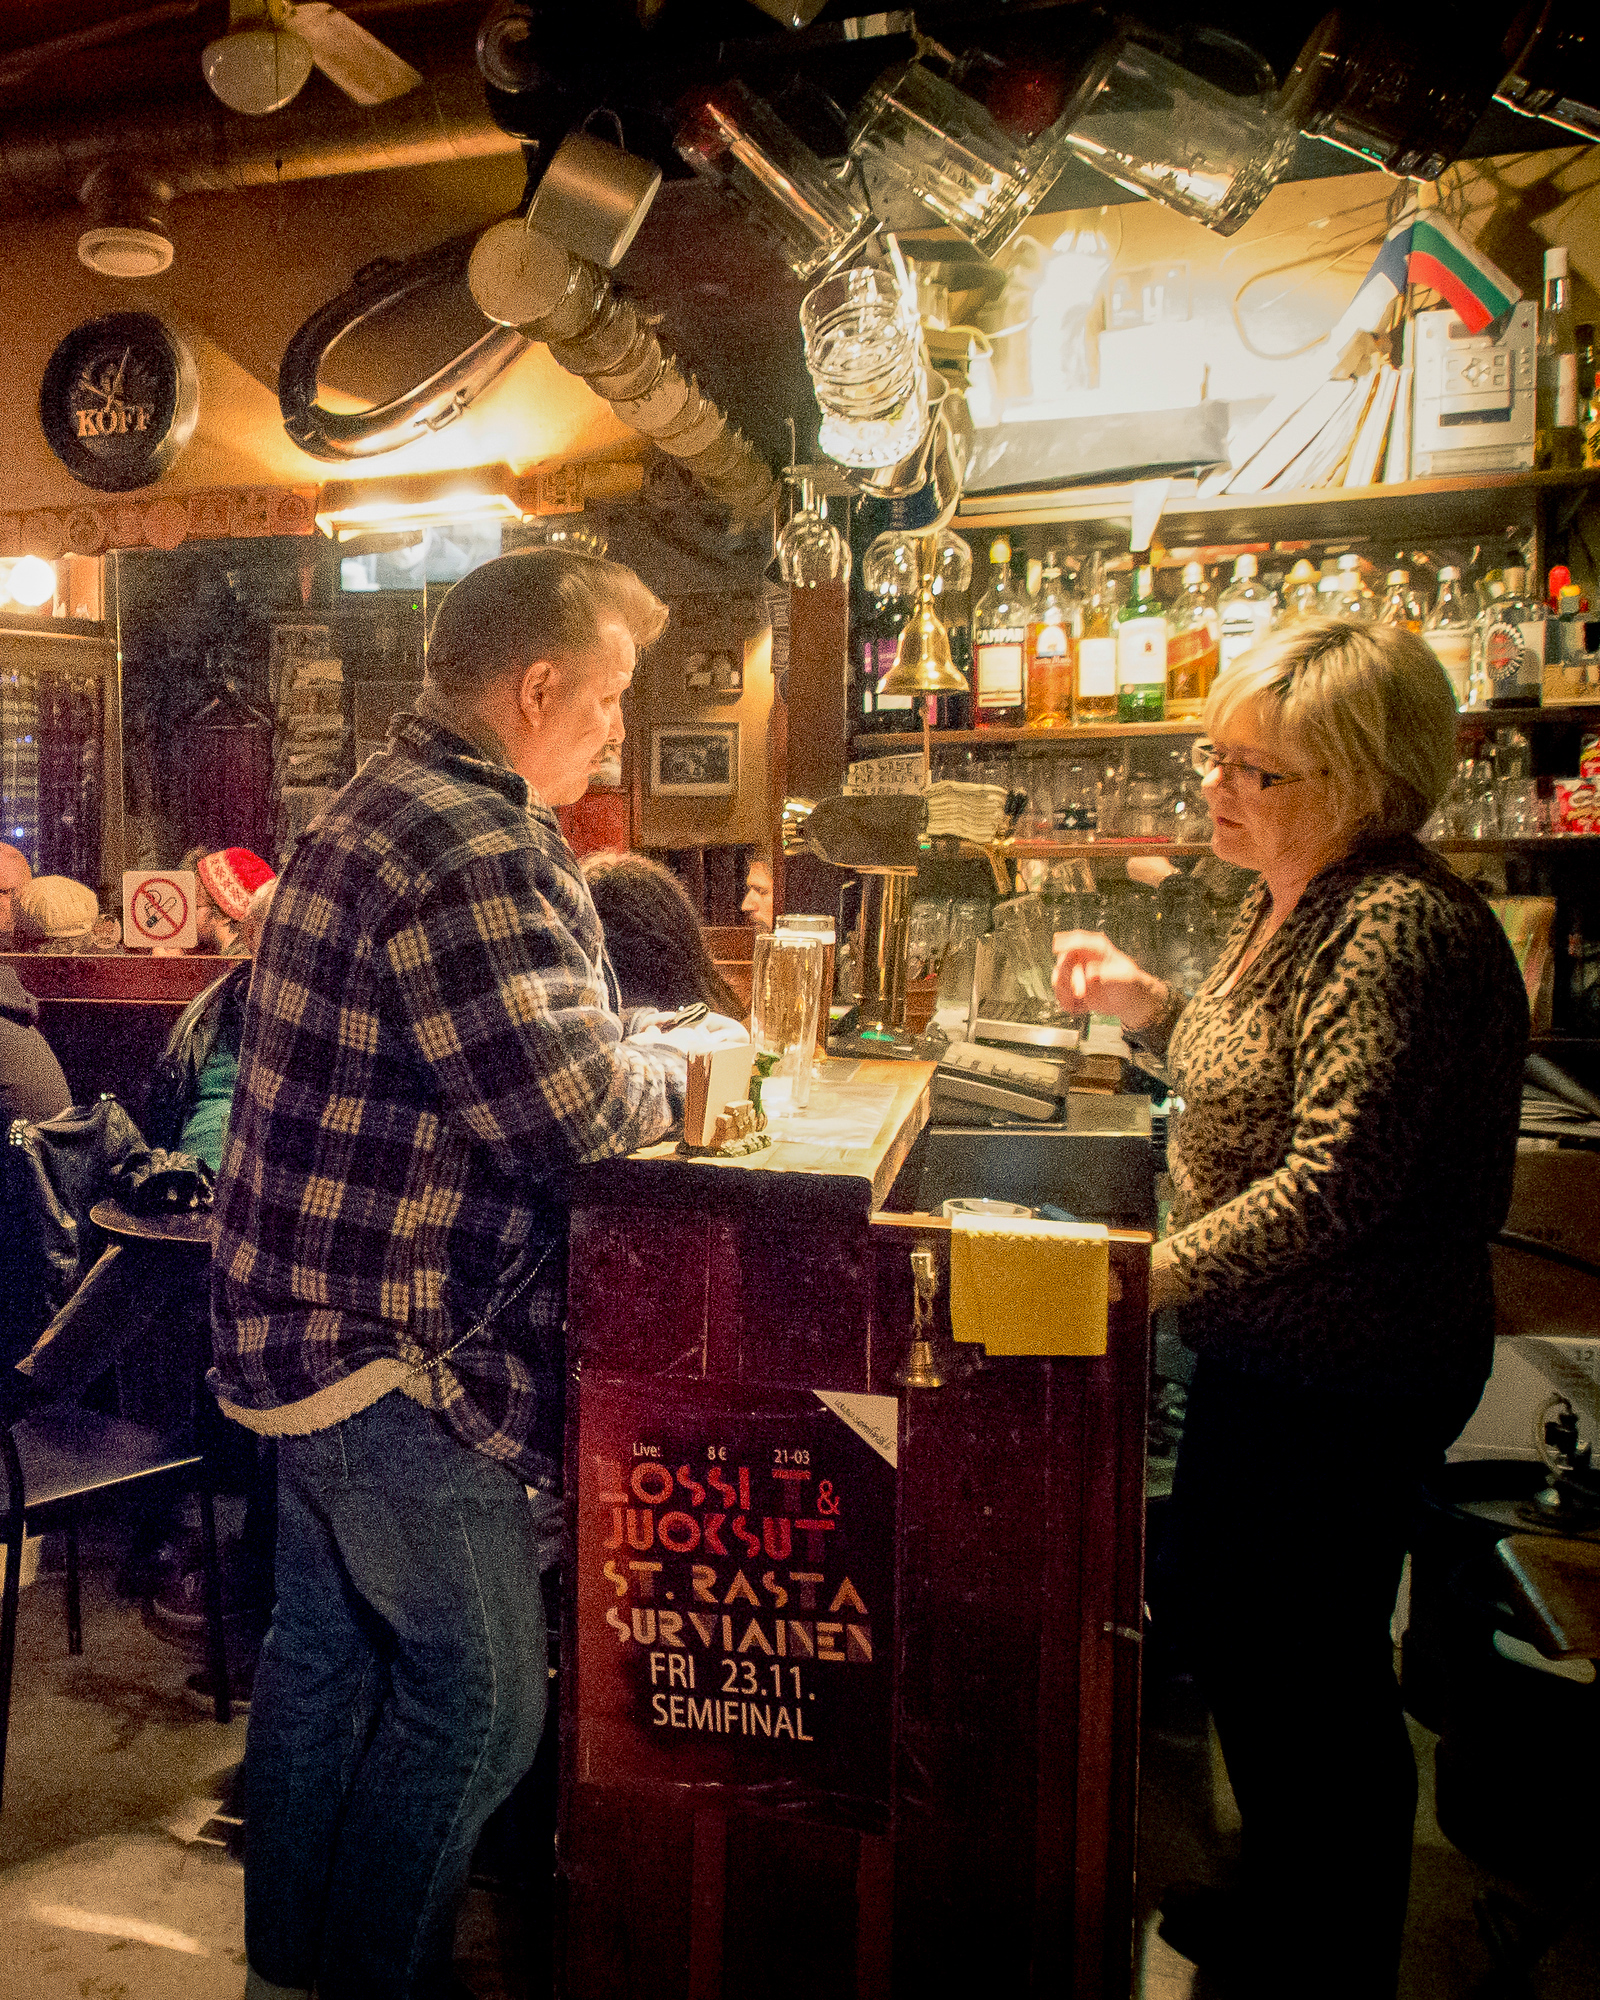 Drinking cheap beer in local bars is just one of the nine best things to do in Helsinki. The other eight might surprise you.